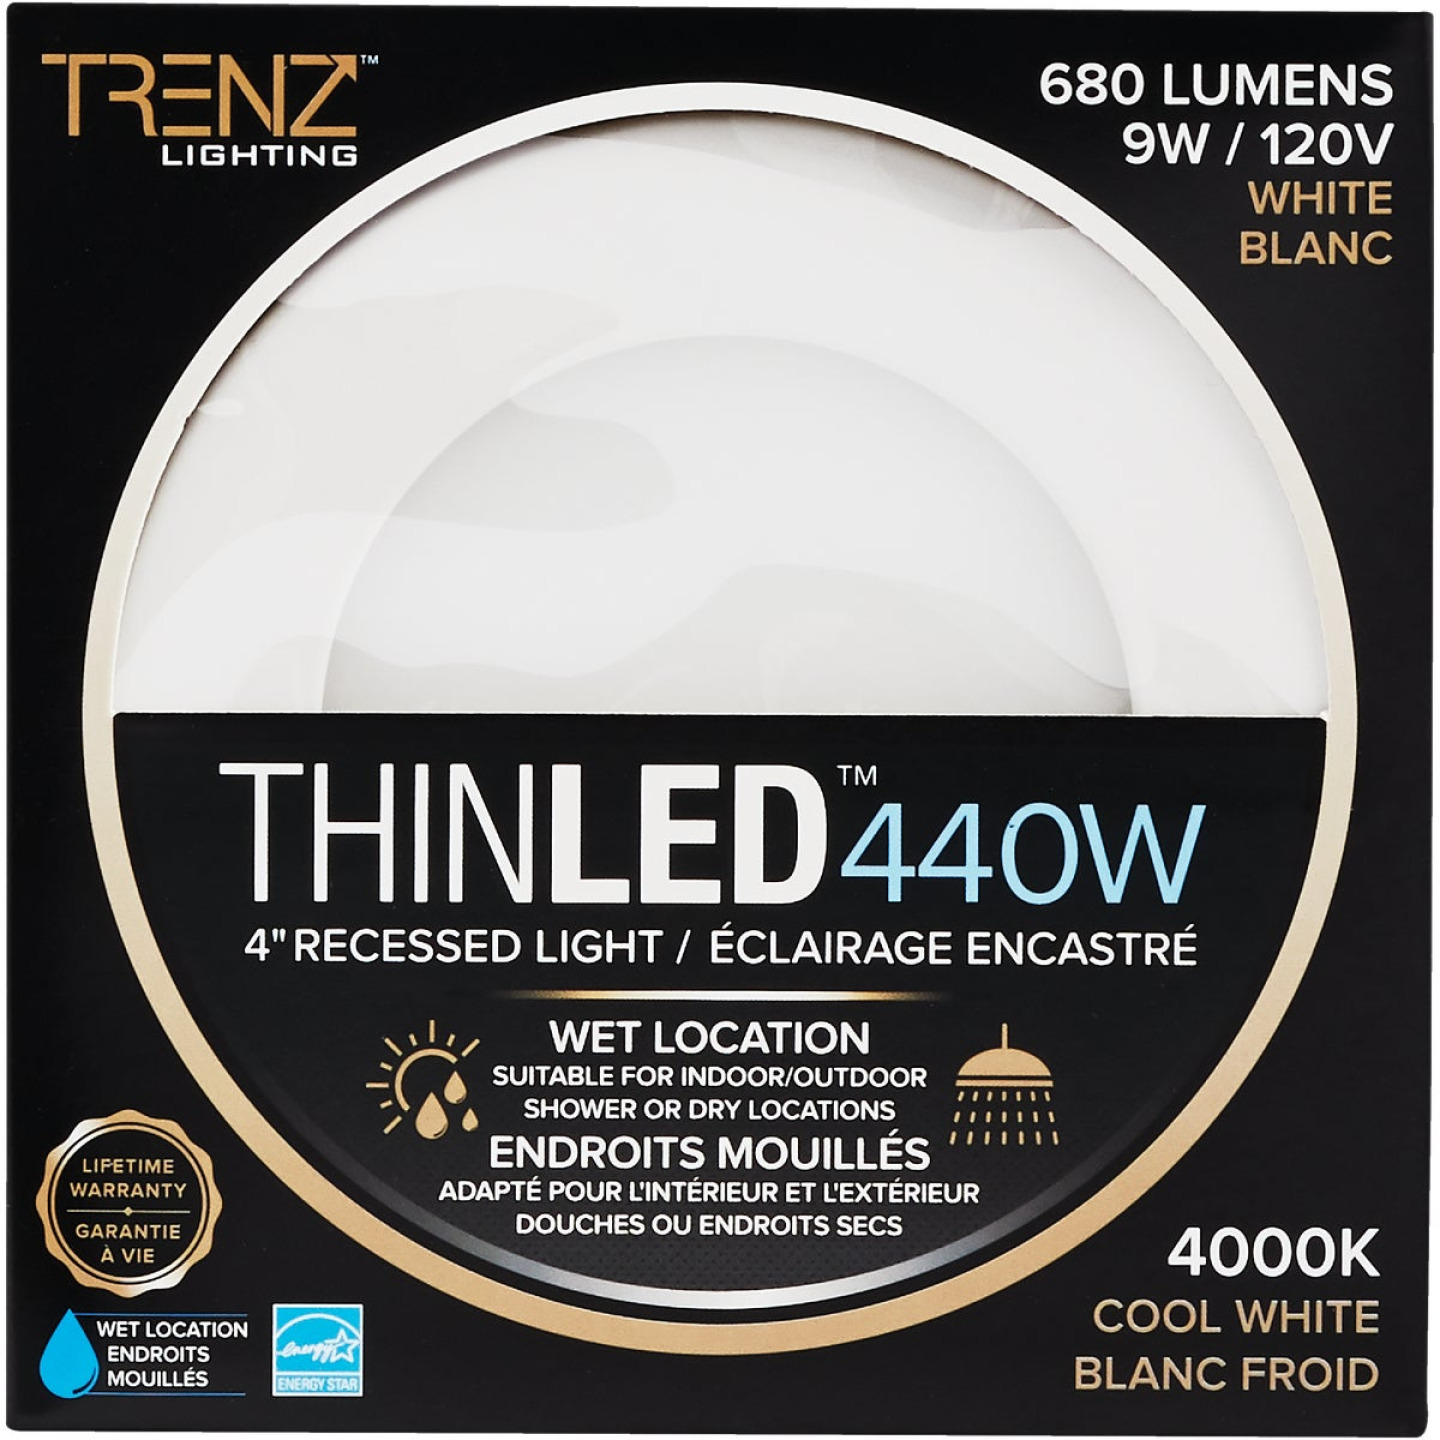 Liteline Trenz ThinLED 4 In. New Construction/Remodel IC Rated White 680 Lm. 4000K Recessed Light Kit Image 2